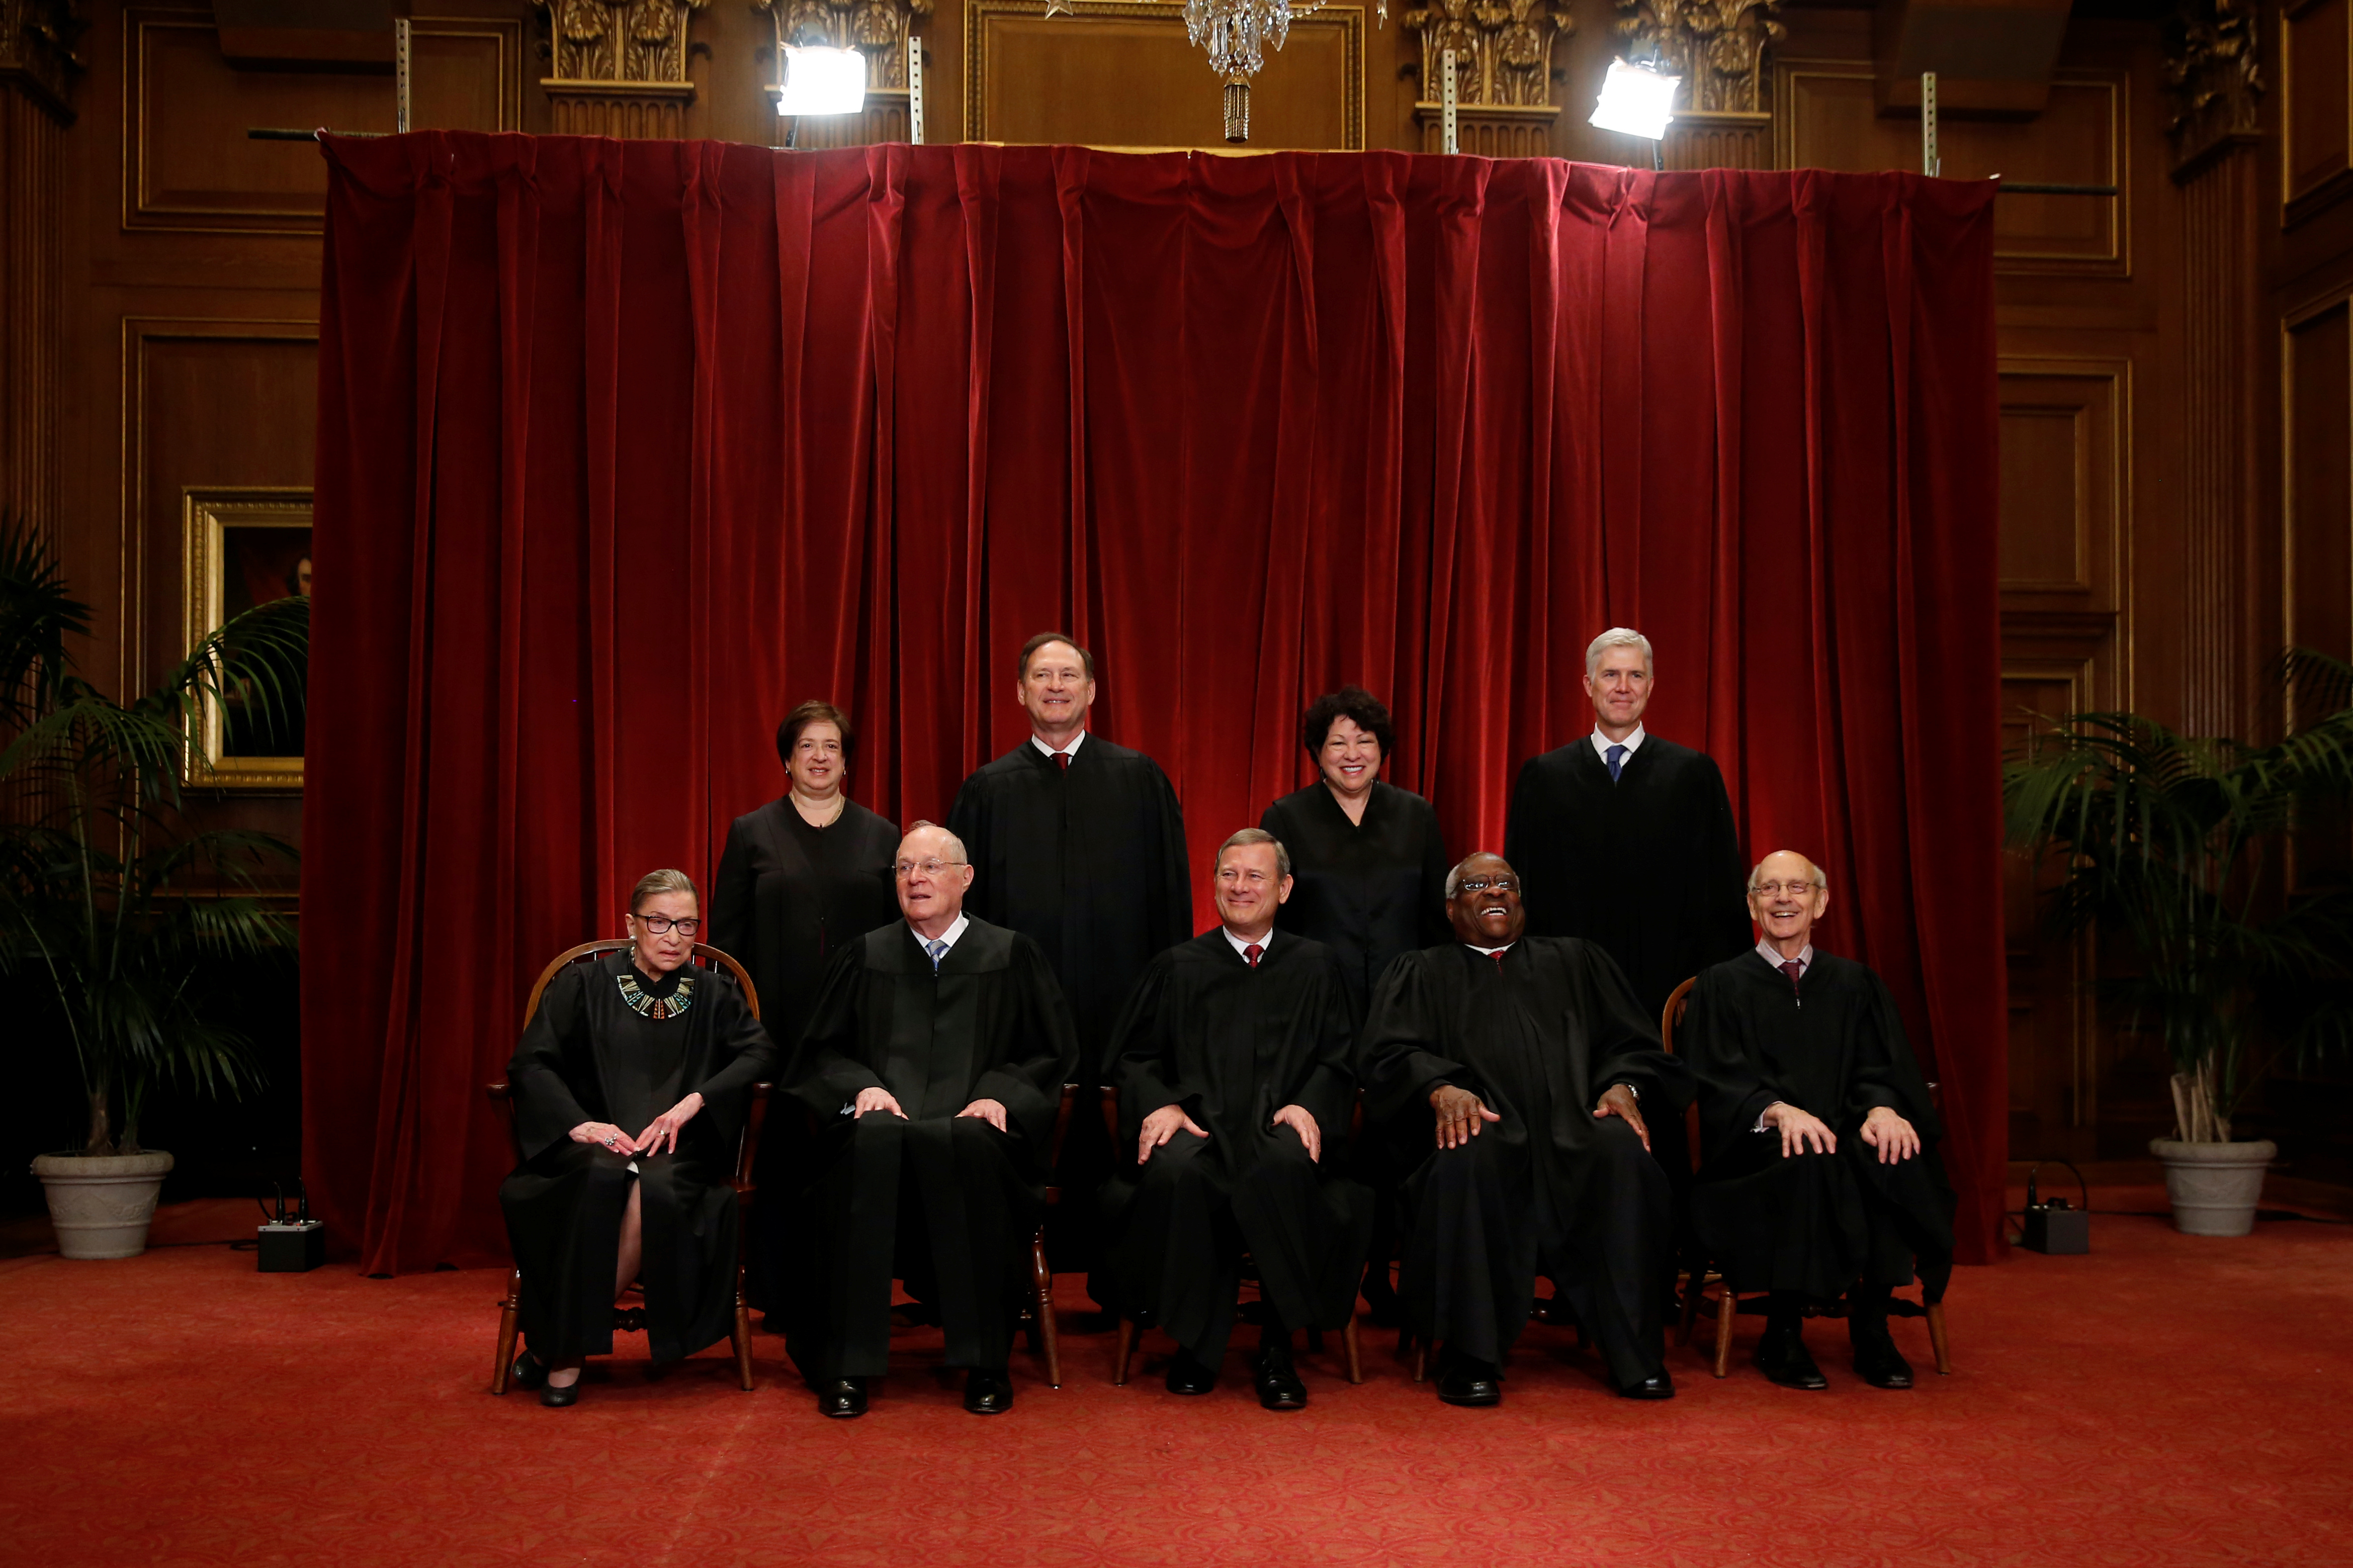 U.S. Chief Justice John Roberts (seated C) leads Justice Ruth Bader Ginsburg (front row, L-R), Justice Anthony Kennedy, Justice Clarence Thomas, Justice Stephen Breyer, Justice Elena Kagan (back row, L-R), Justice Samuel Alito, Justice Sonia Sotomayor, and Justice Neil Gorsuch in taking a new family photo including Gorsuch, their most recent addition, at the Supreme Court building in Washington, D.C, U.S., June 1, 2017. REUTERS/Jonathan Ernst - RC1263640740